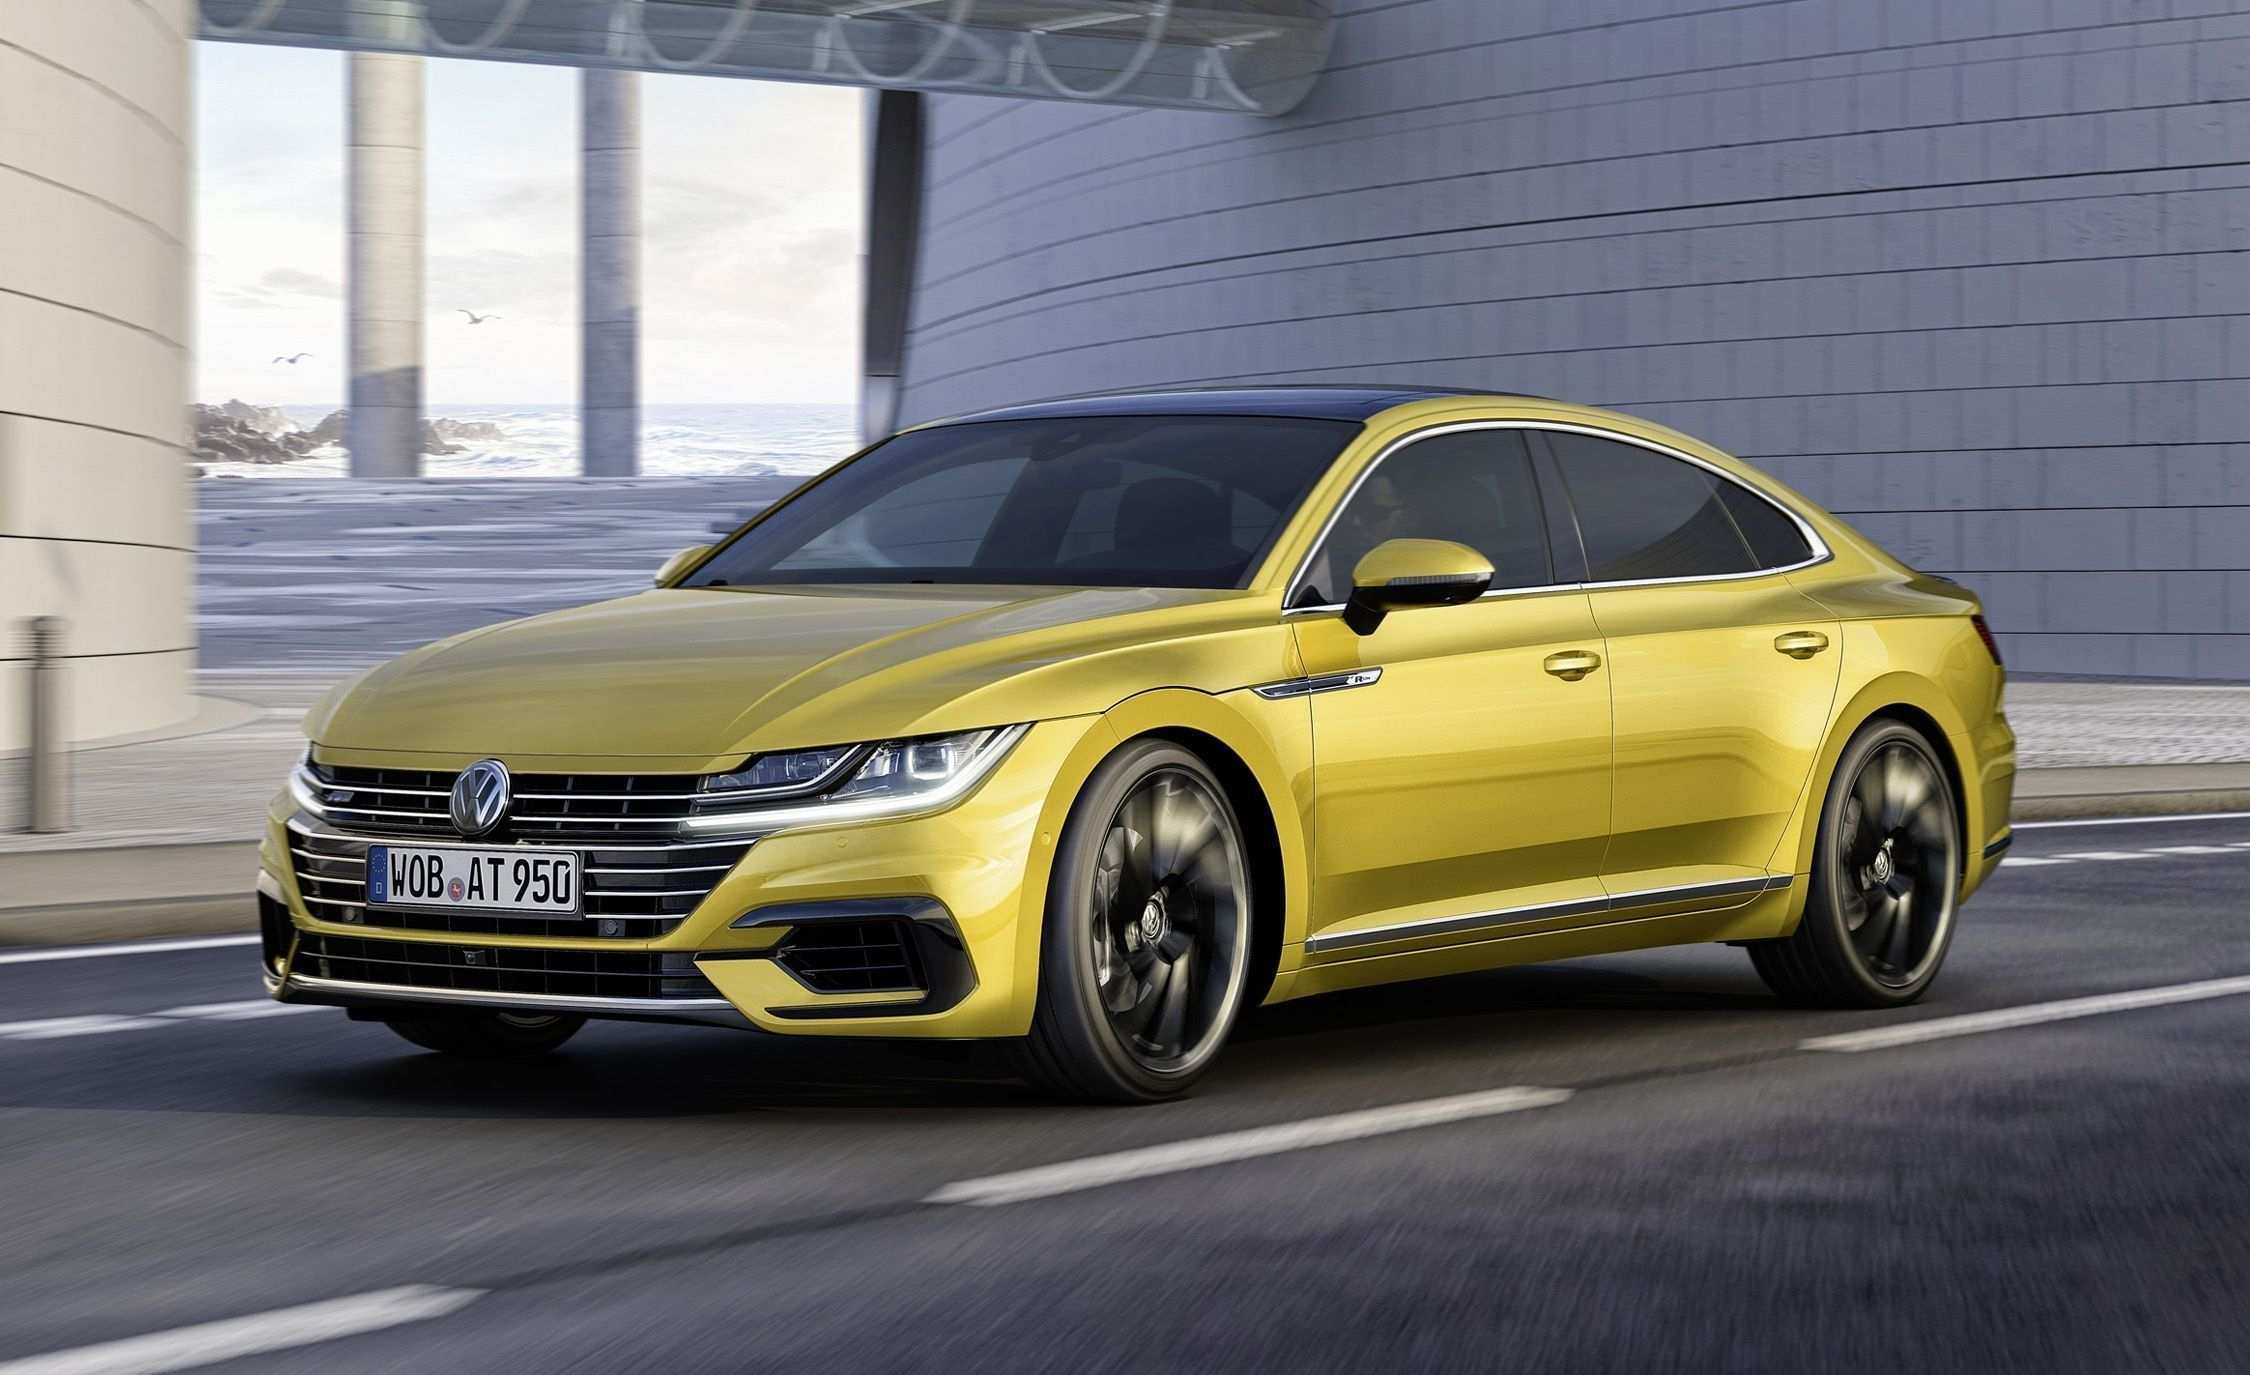 66 All New Volkswagen 2019 Lineup Images with Volkswagen 2019 Lineup